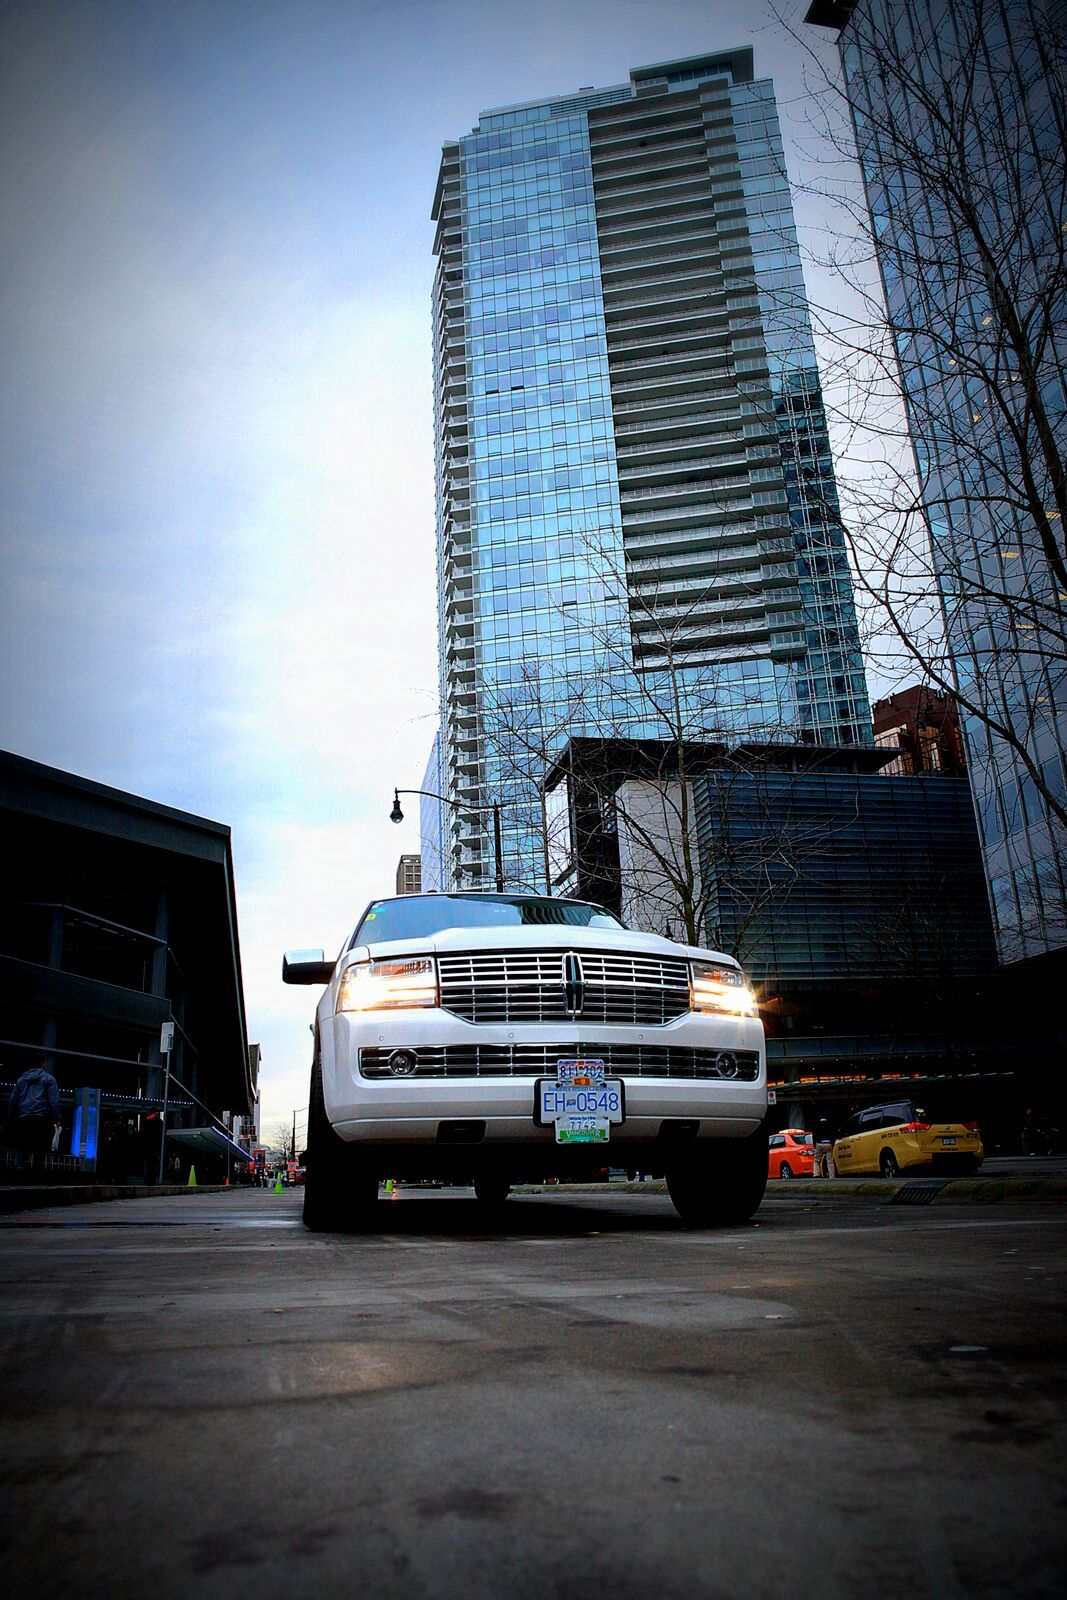 Limousine service for city sightseeing tours get in